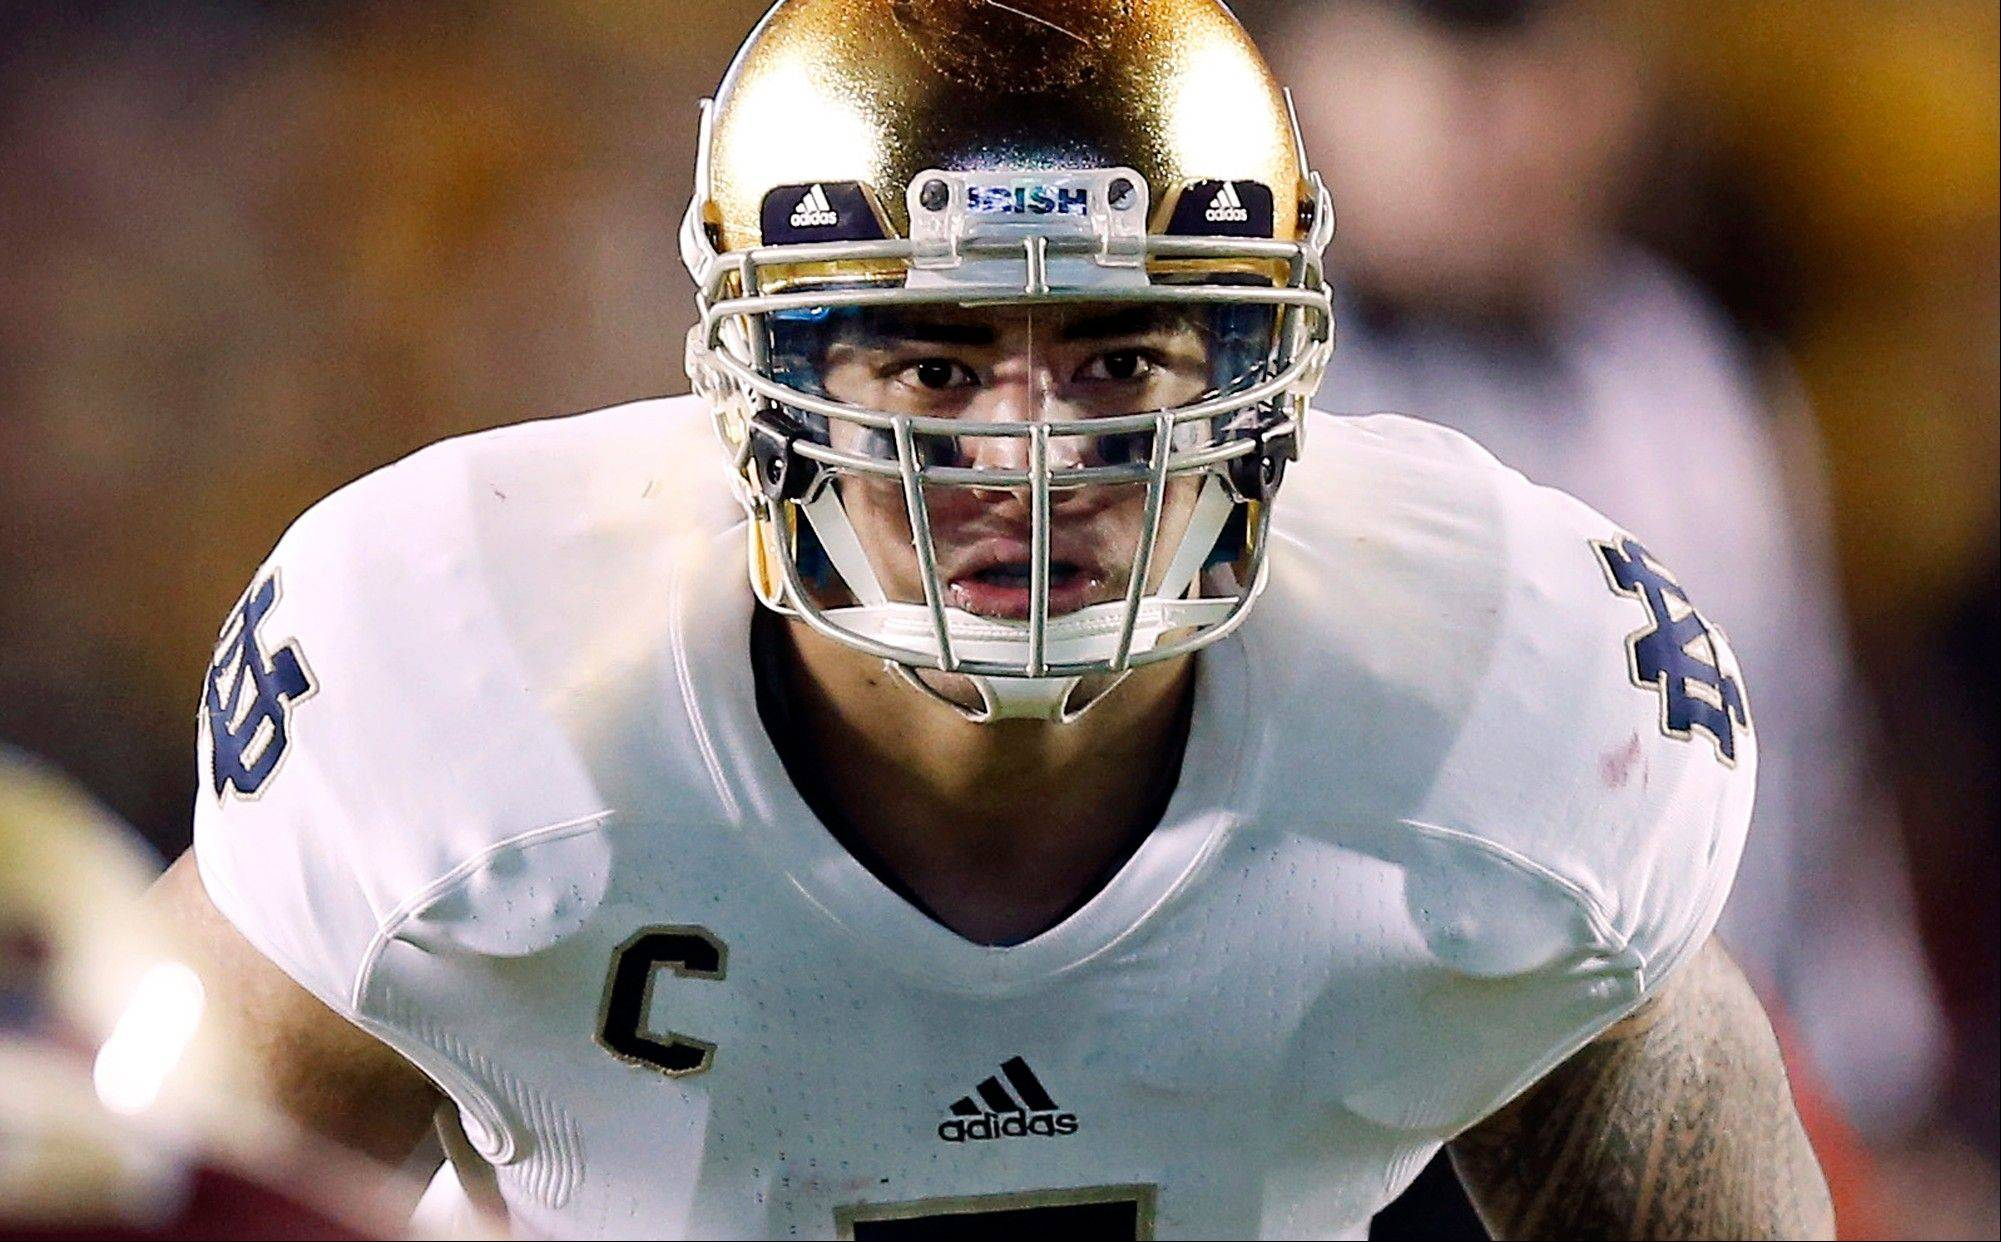 FILE - In this Nov. 10, 2012, file photo, Notre Dame linebacker Manti Te'o waits for the snap during the second half of Notre Dame's 21-6 win over Boston College in a NCAA college football game in Boston. Te'o is a finalist for the Heisman Trophy. (AP Photo/Winslow Townson, File)